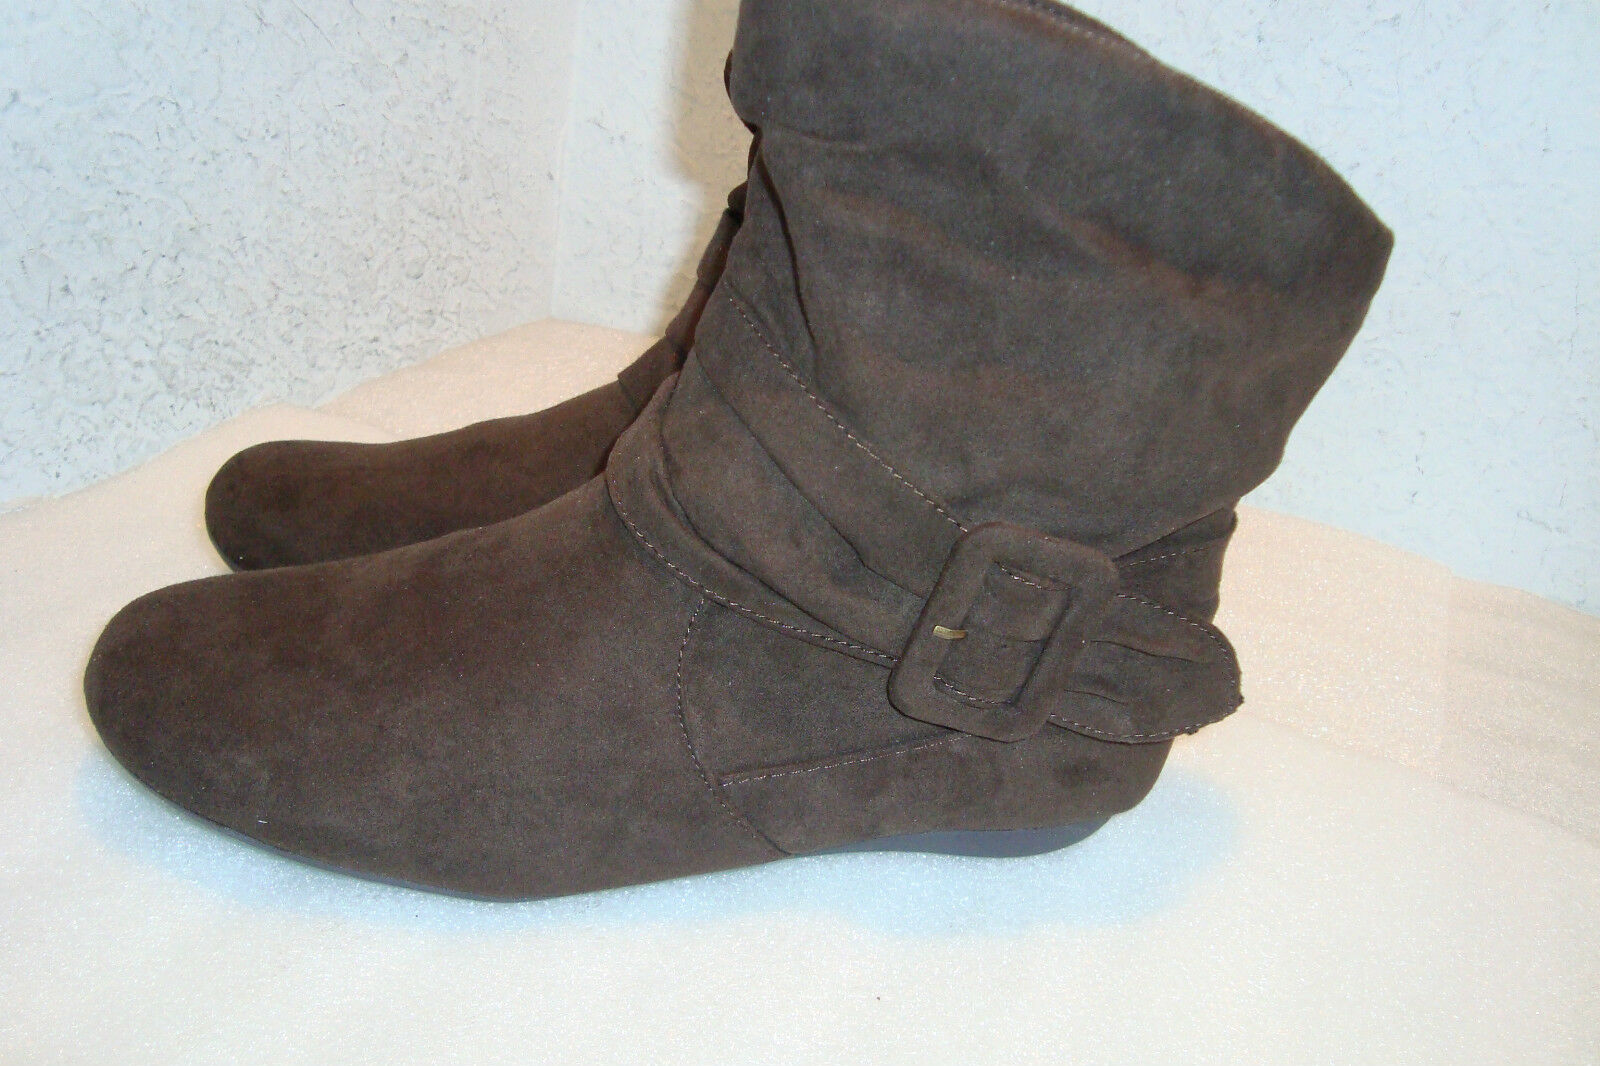 Rampage New Donna Donna New NWOB Brazil Brown Ankle Stivali Shoes 6.5 Medium New 2b4a2a